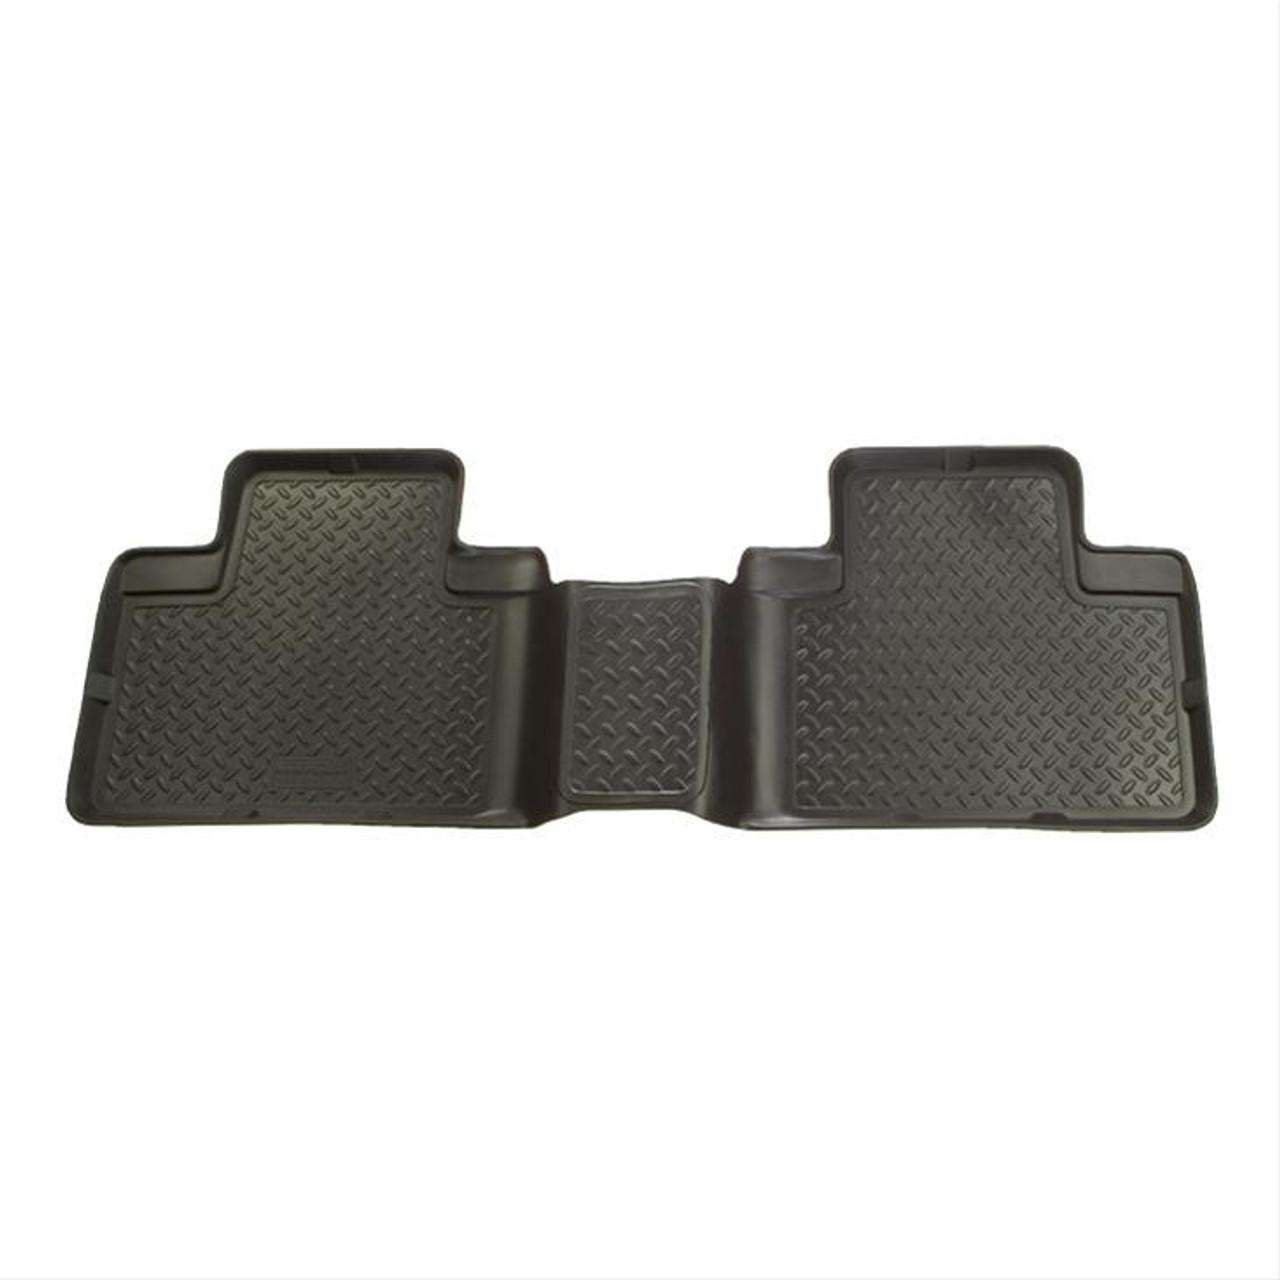 01-04 TACOMA DOUBLE CAB 2ND SEAT FLOOR LINER BLACK